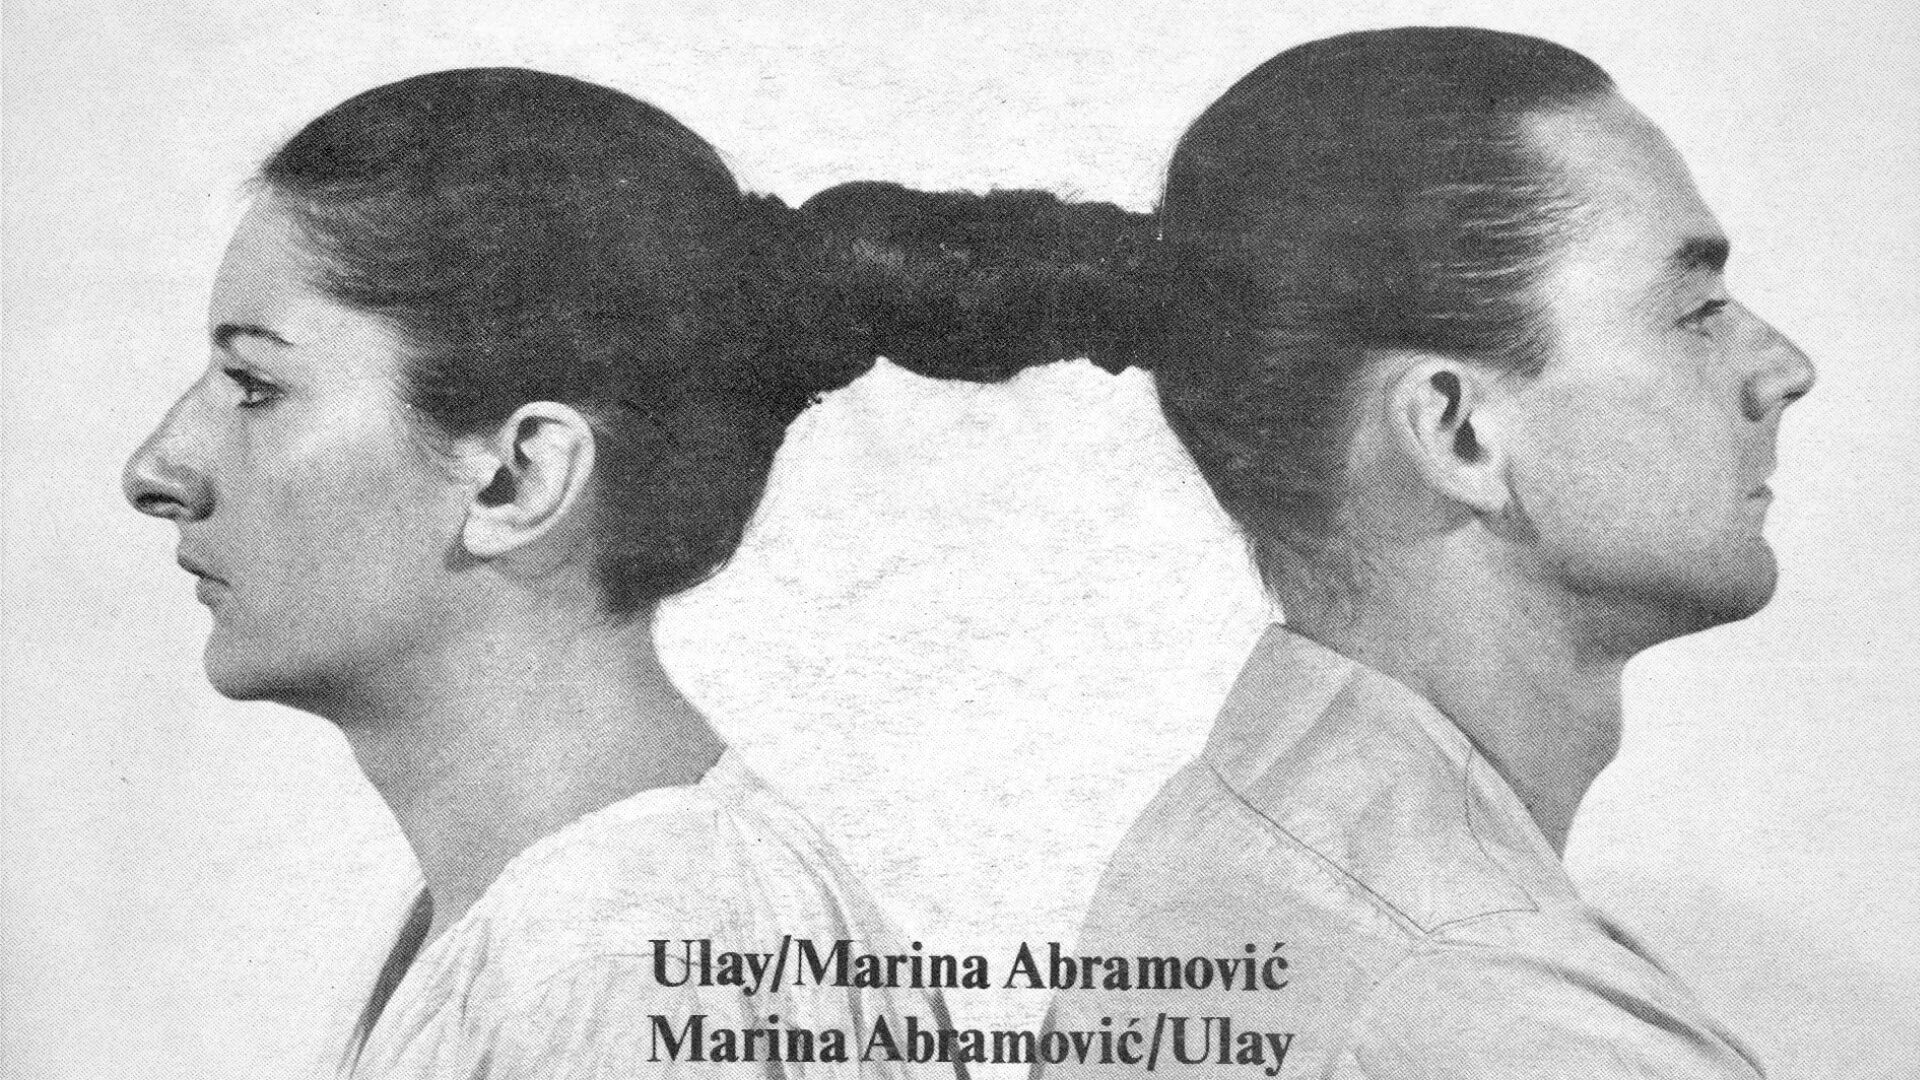 From L-R: Marina Abramovic and Ulay perform Relation in Time from the series titled That Self, at Studio G7, Bologna, Italy, 1977 | Tribute to Ulay | STIRworld